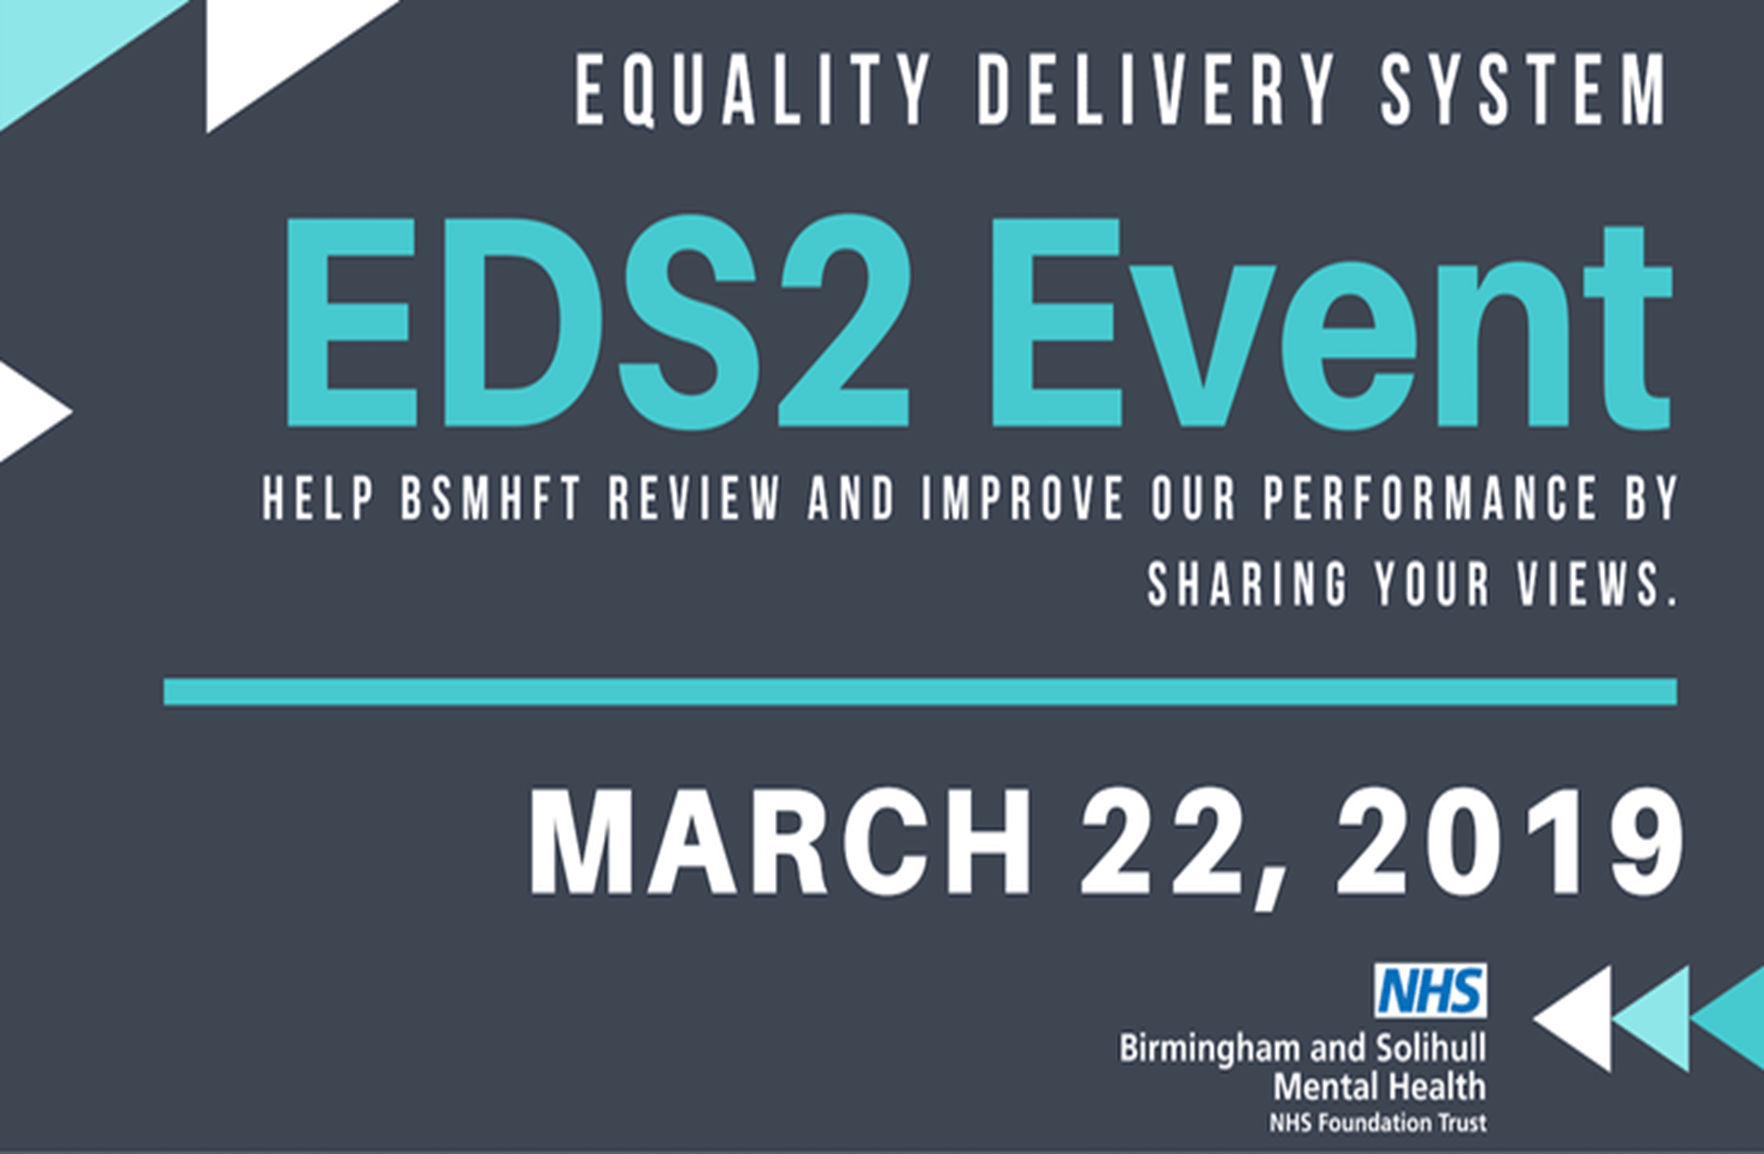 TEMP - Equality Delivery System Event flyer